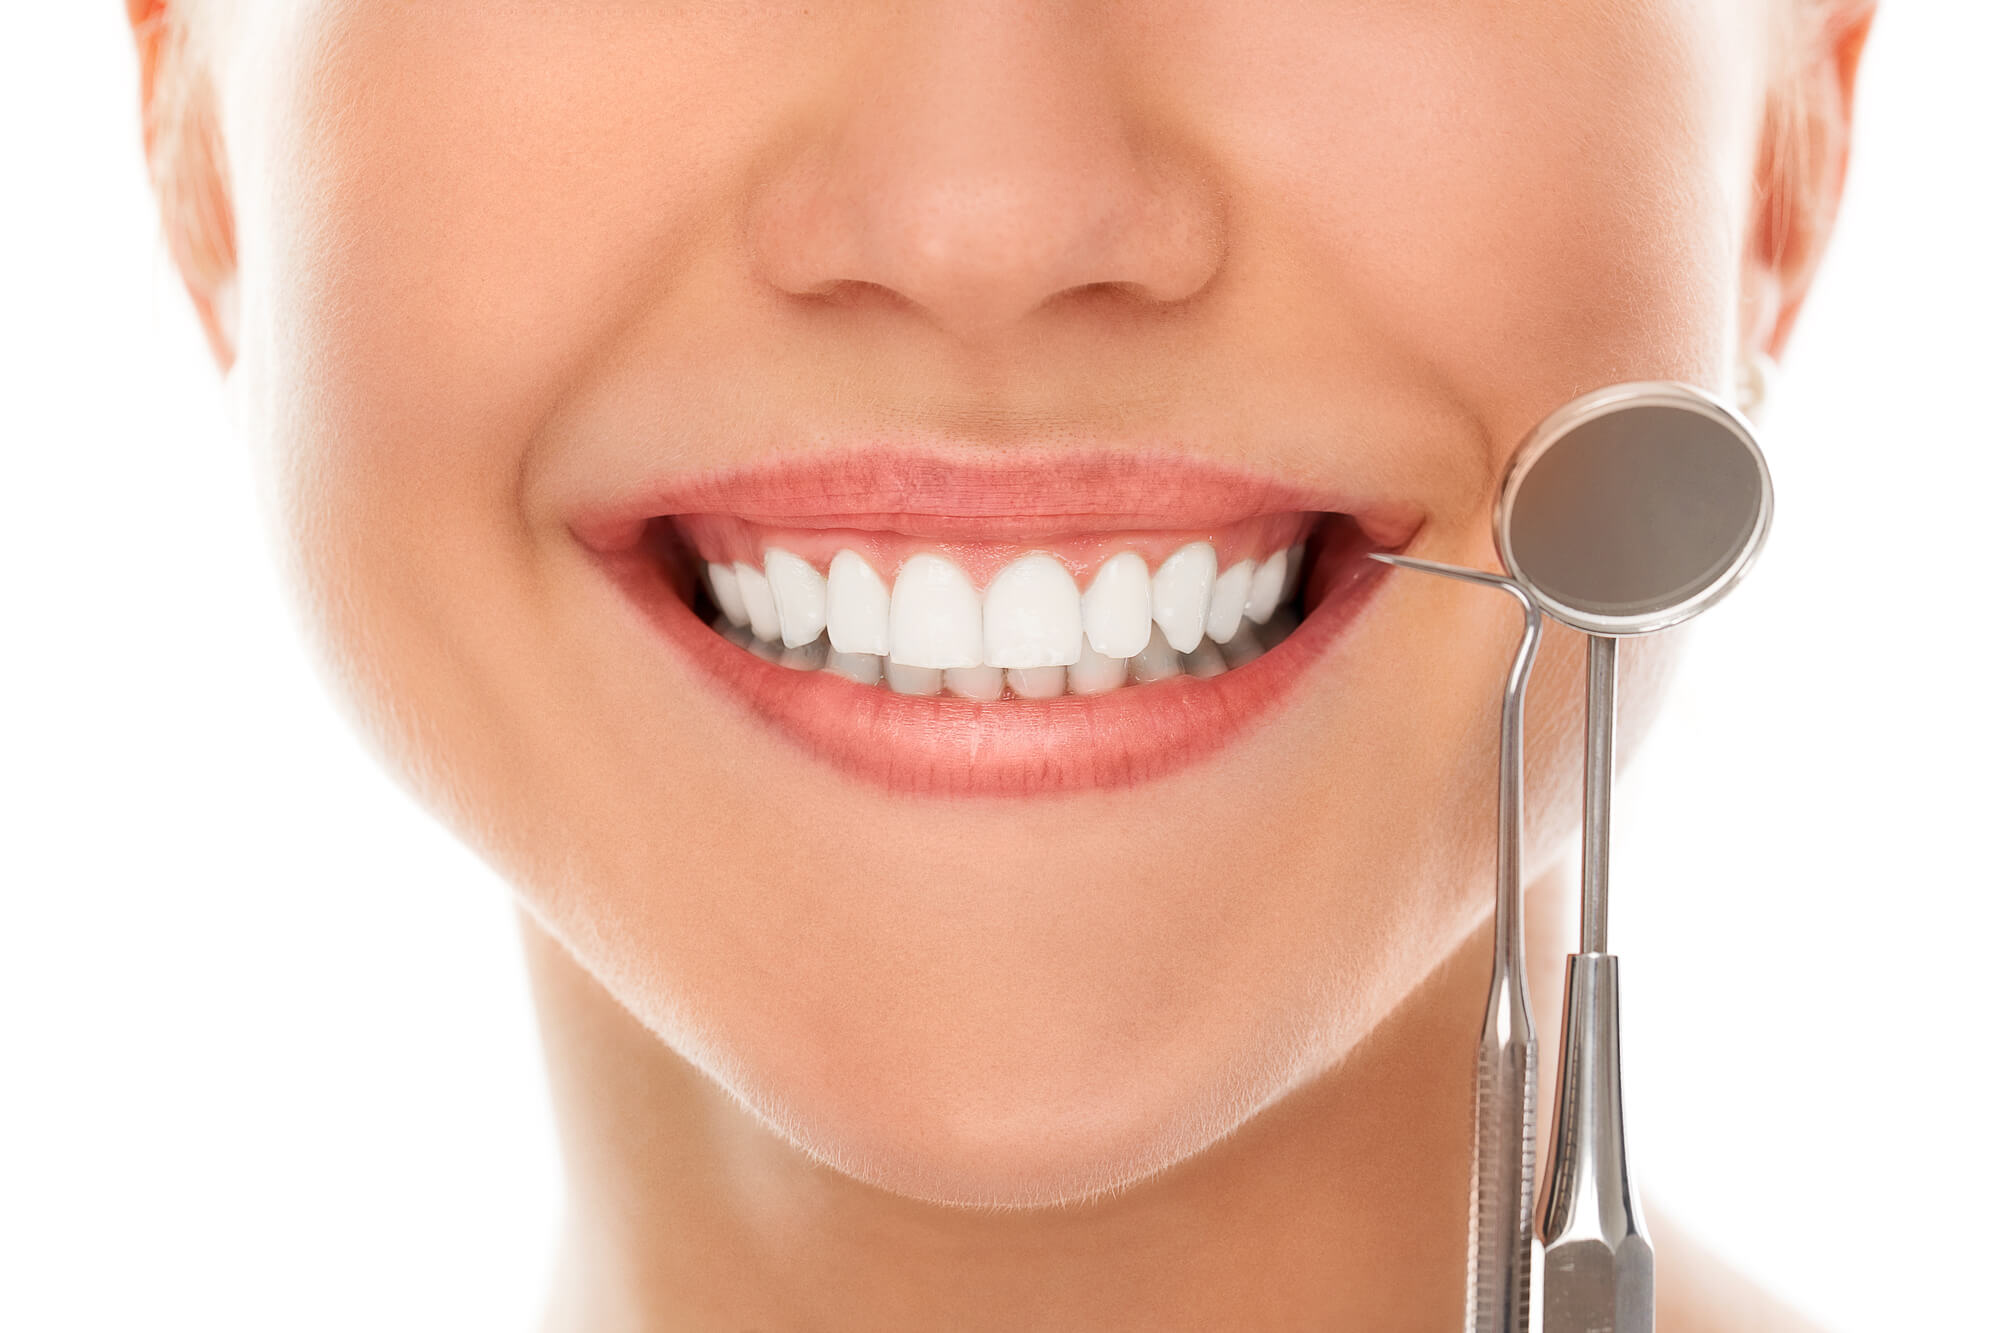 what is an endodontist 23233?